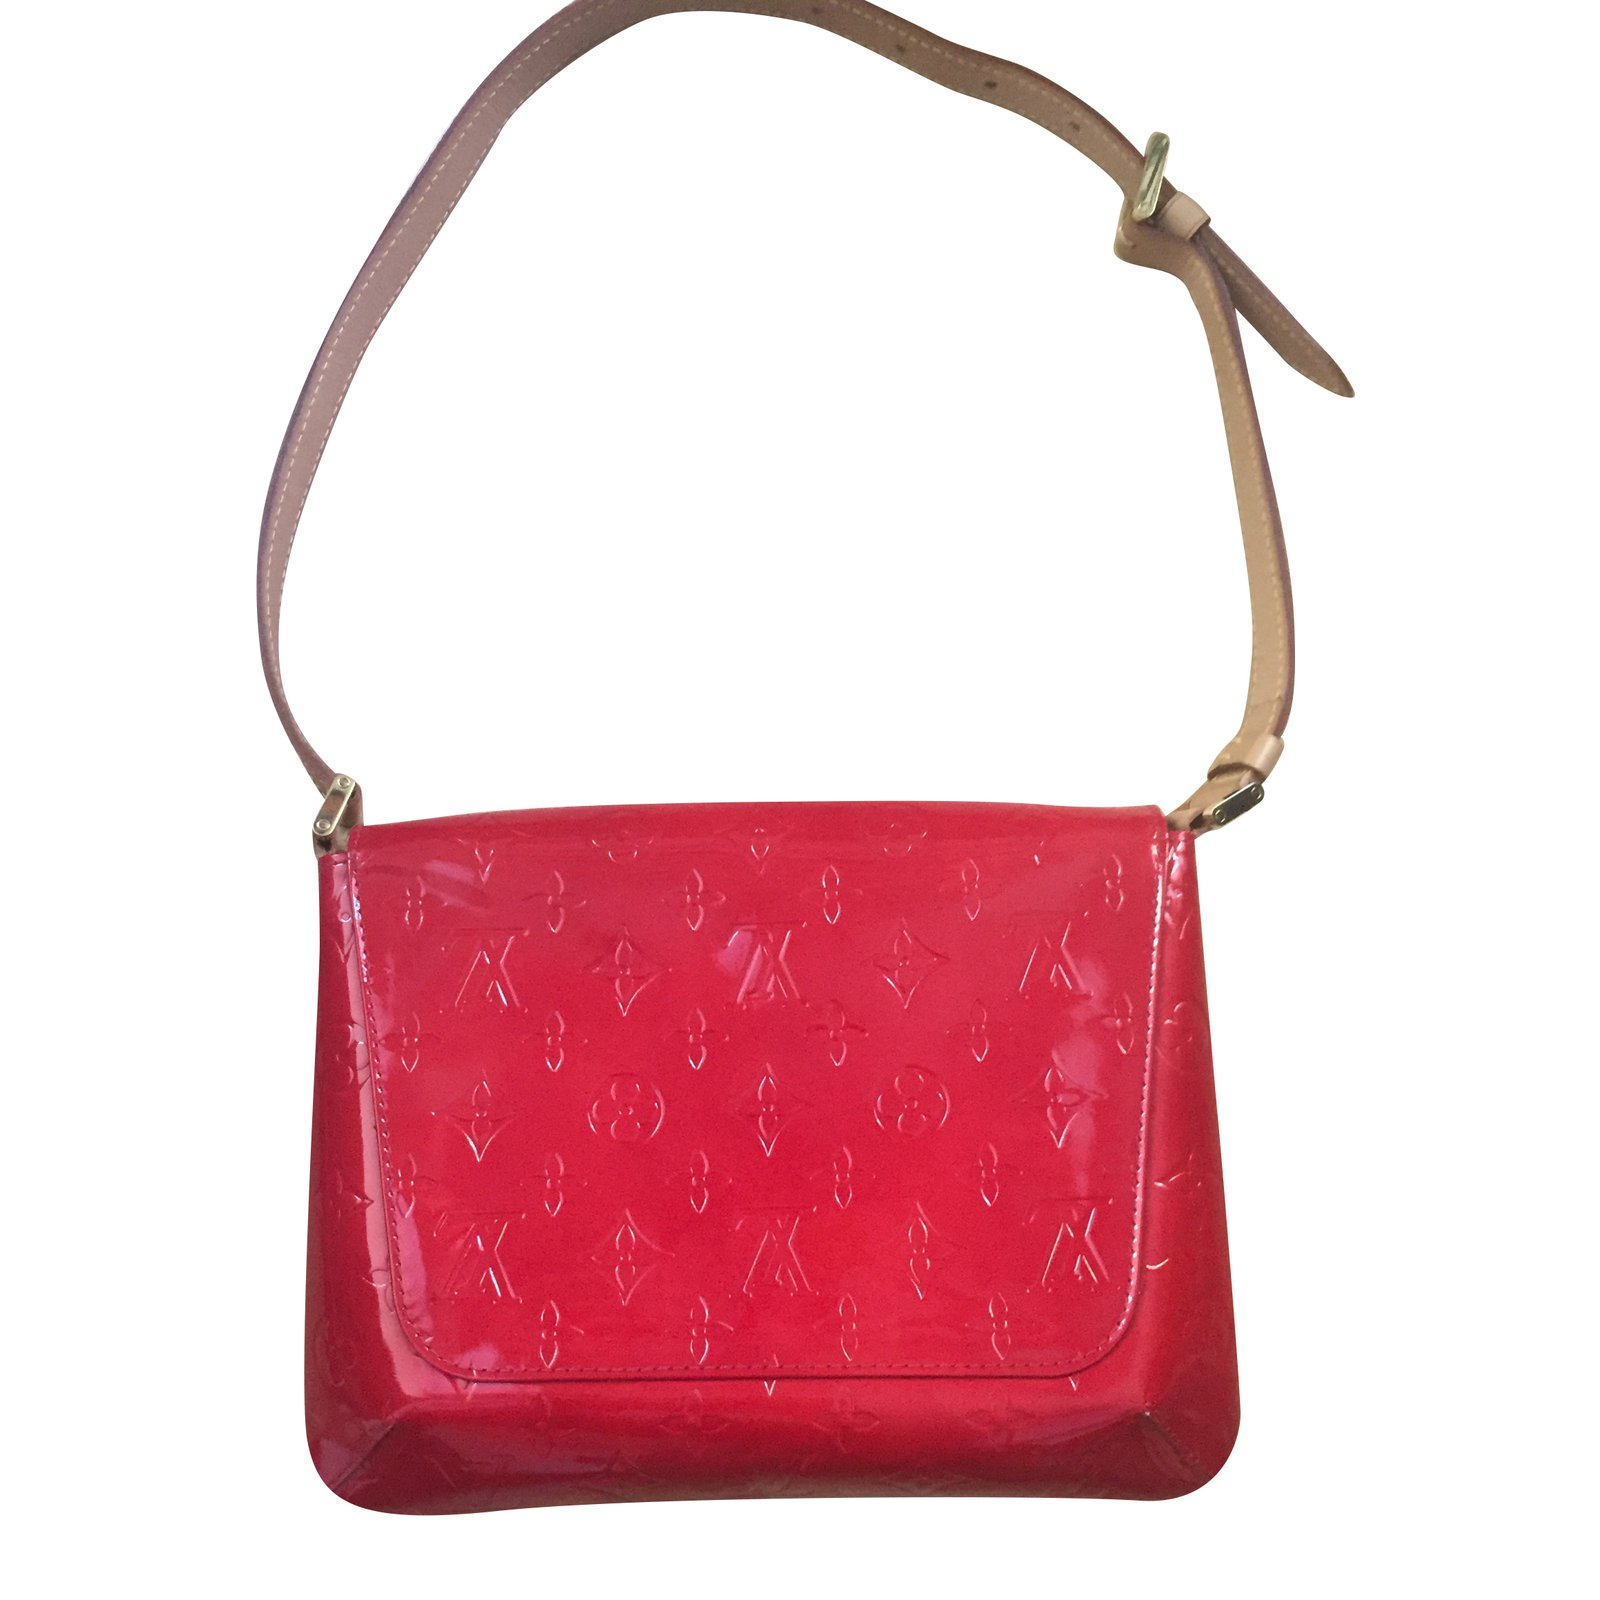 Louis Vuitton Handbags Patent Leather Red Ref 67638